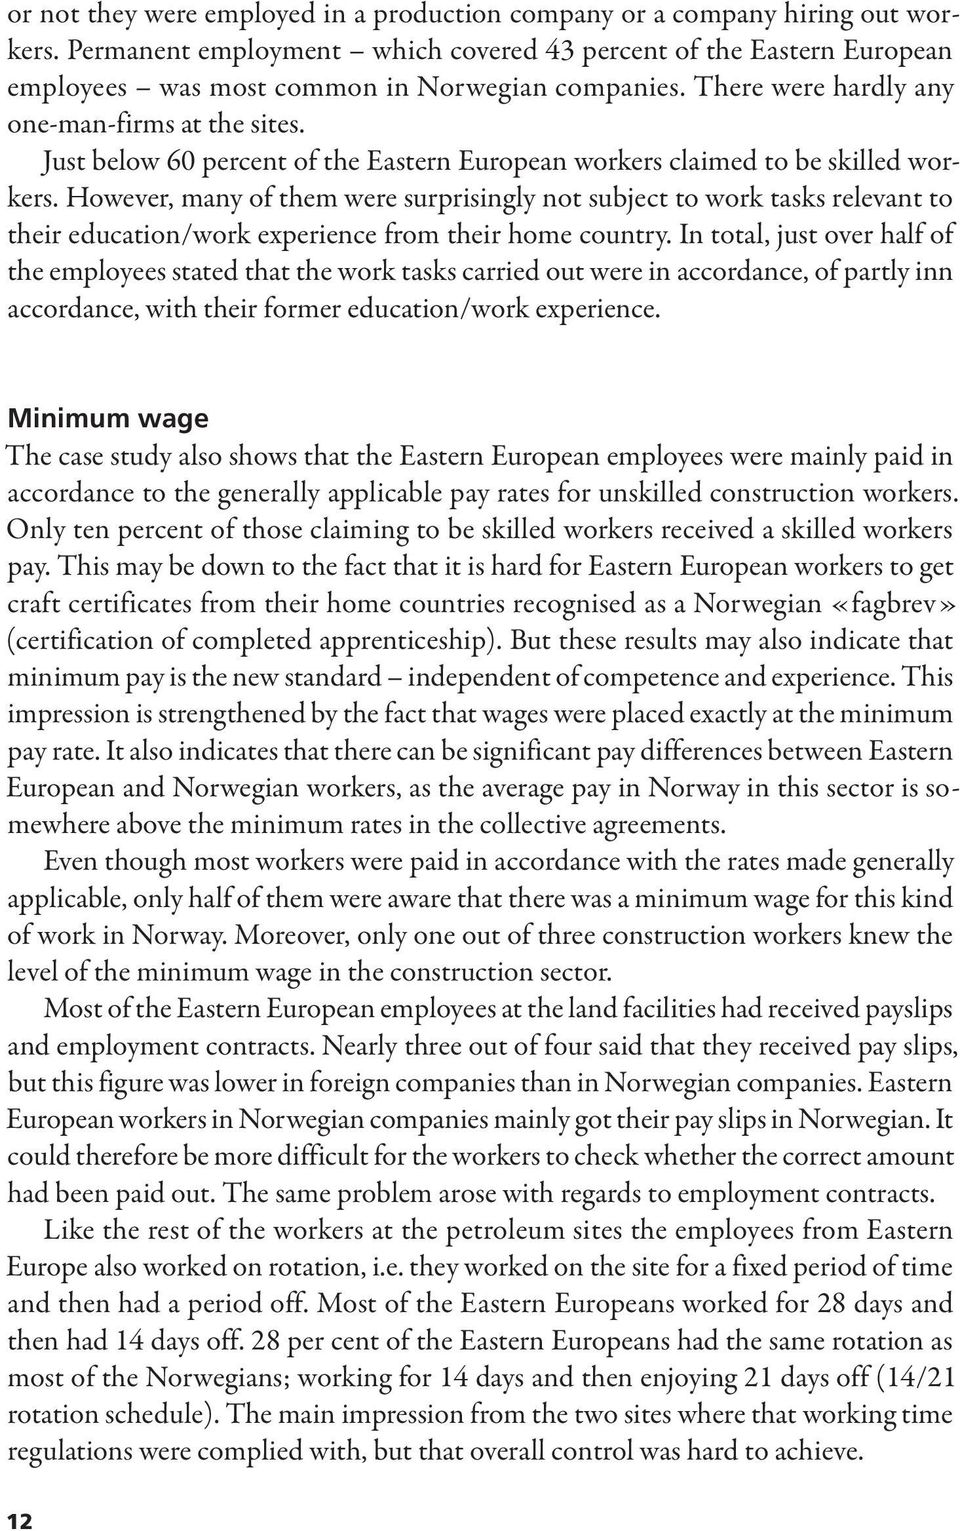 Just below 60 percent of the Eastern European workers claimed to be skilled workers.